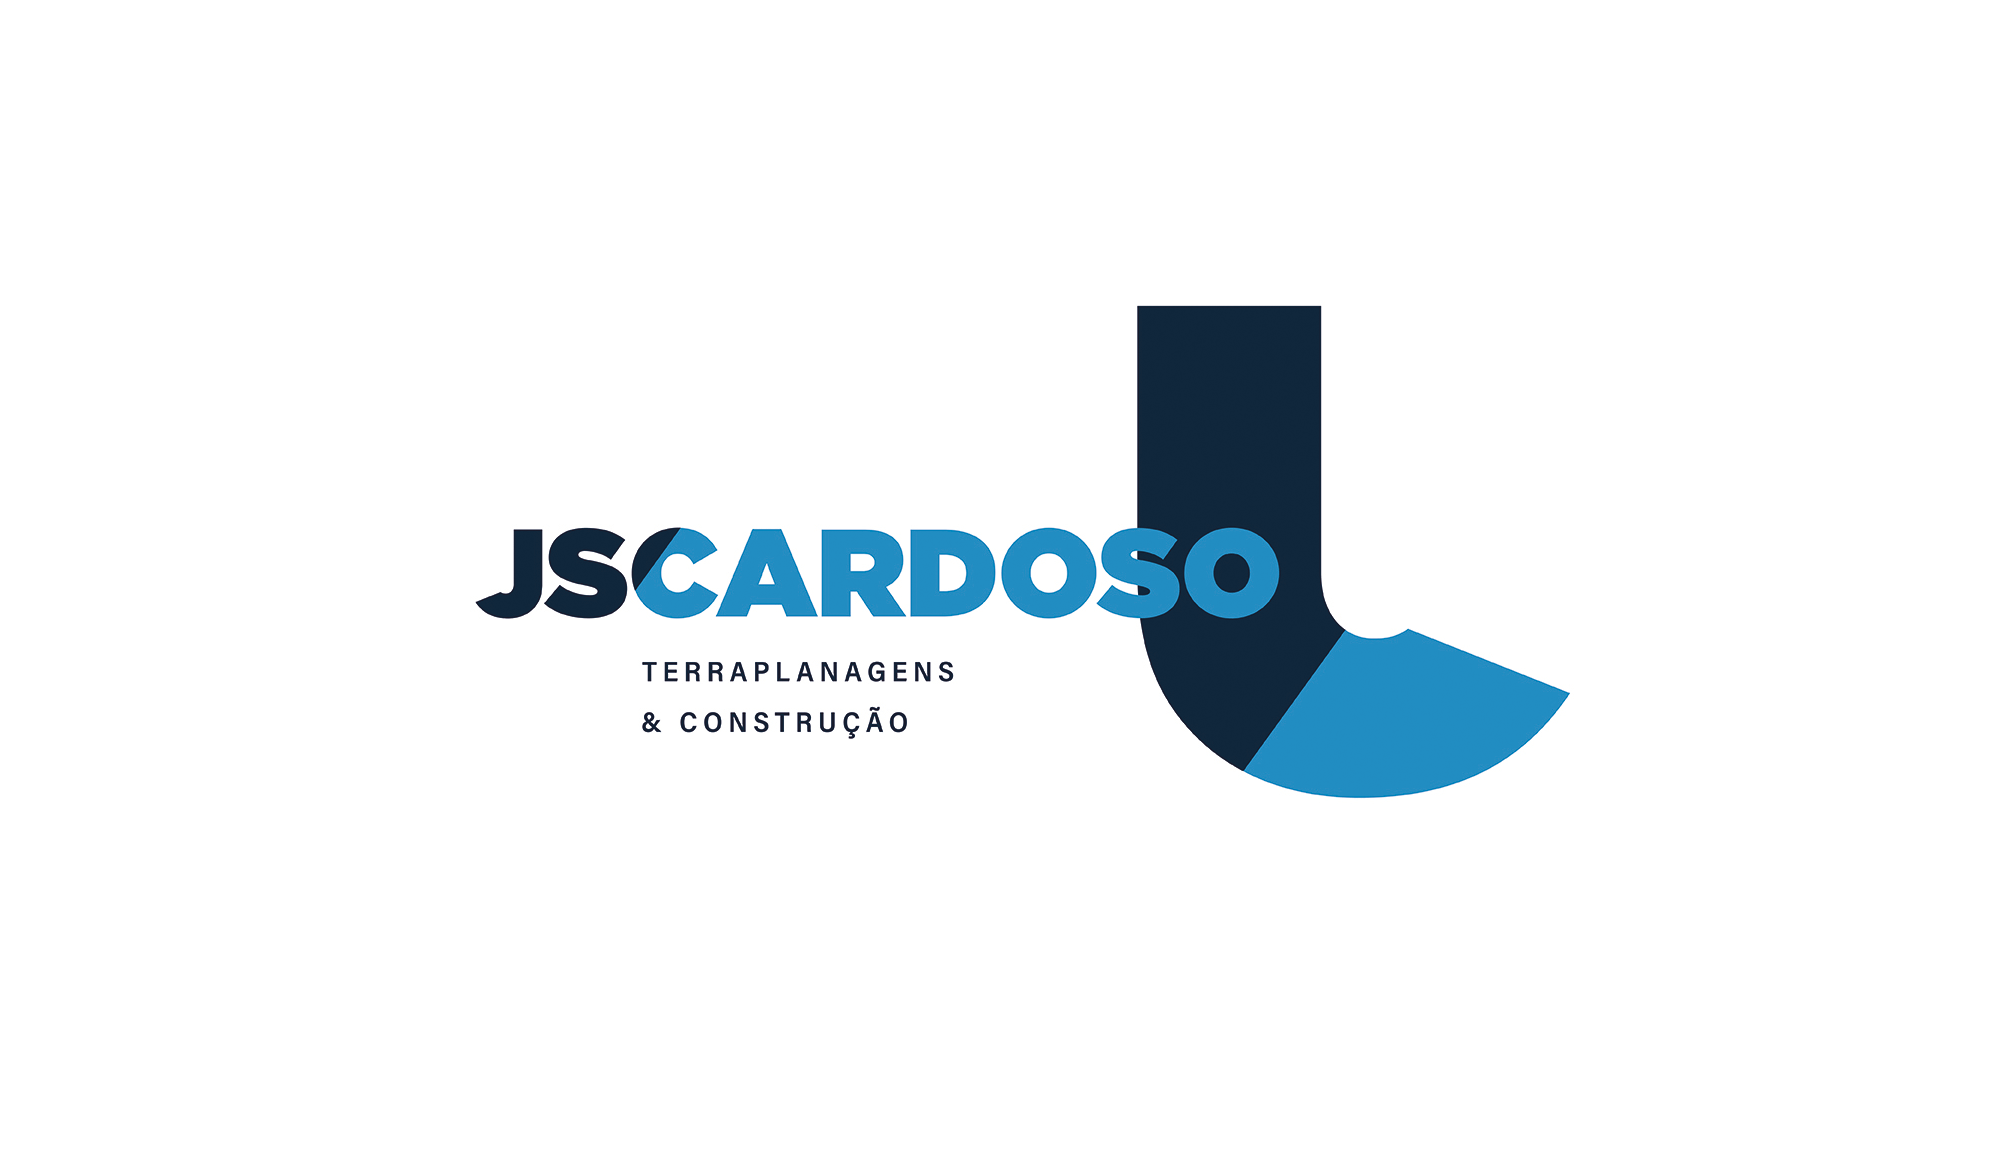 JSCardoso . raulpinadesign